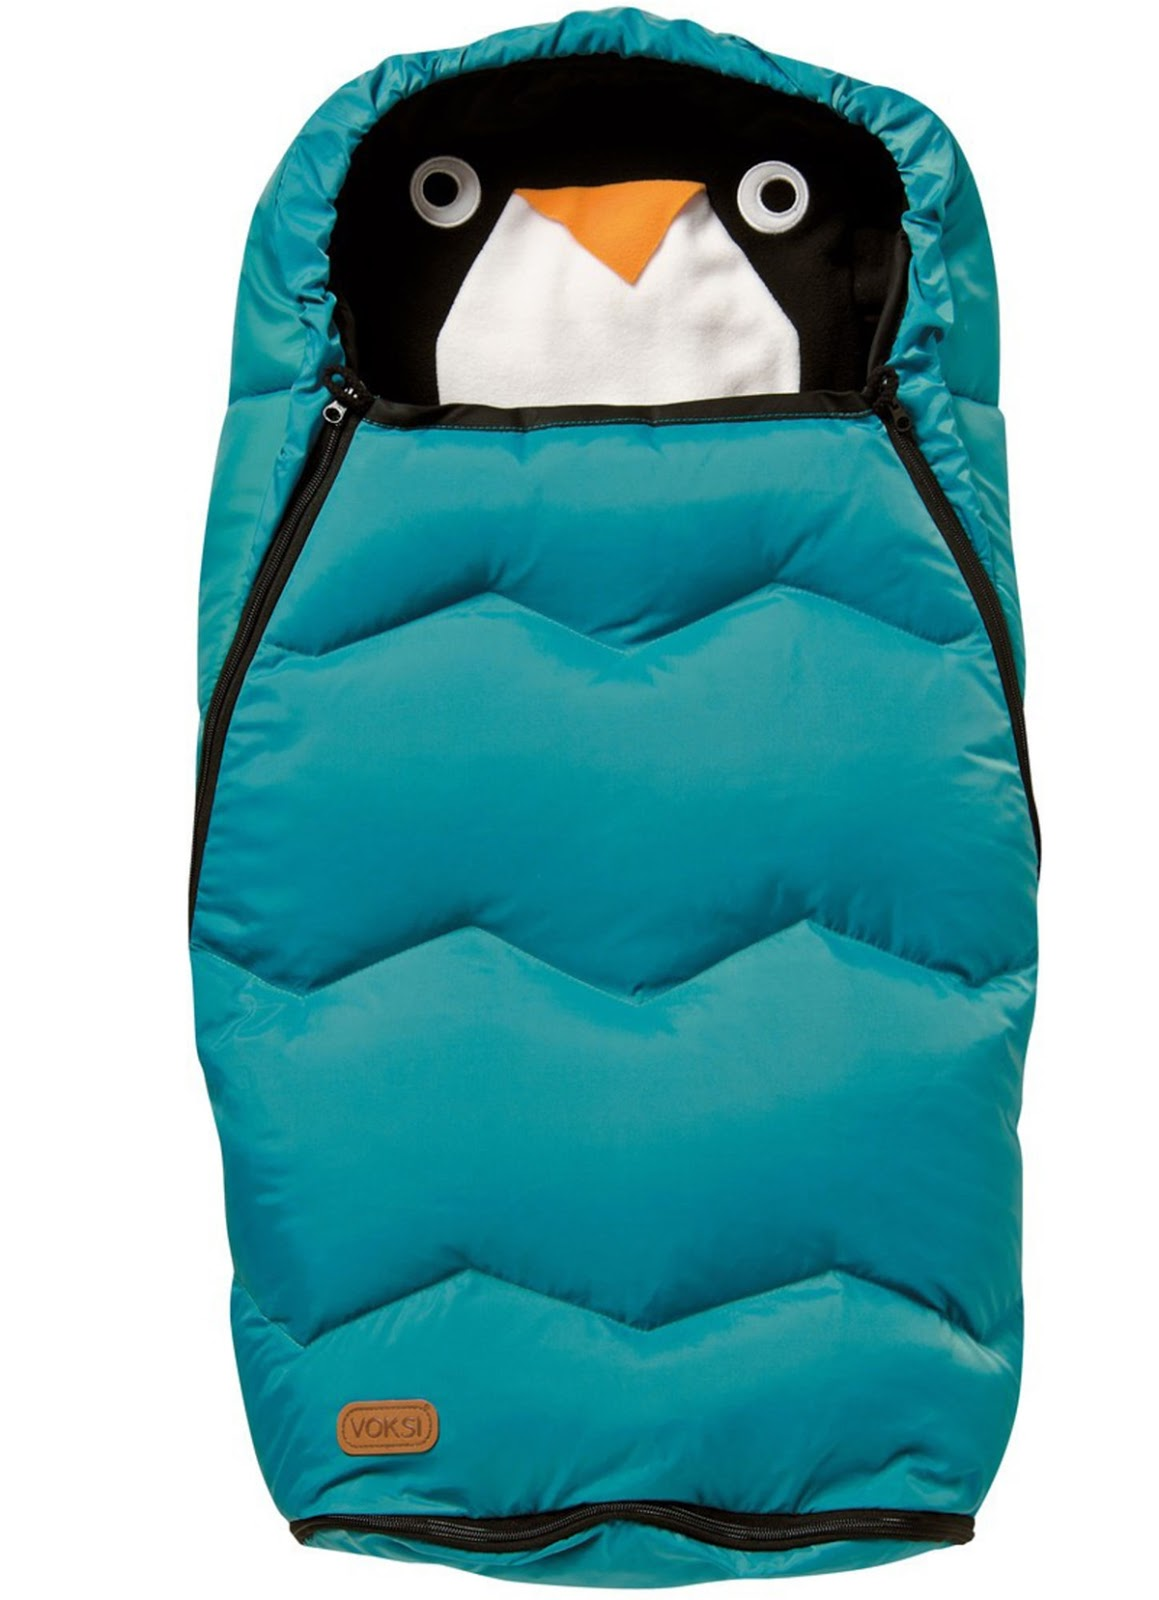 Like To Hide With Your Kids Indoors During The Winter Months A Warm Stroller Sleeping Bag Is Good Investment Here Are Some Of Warmest And Cutest